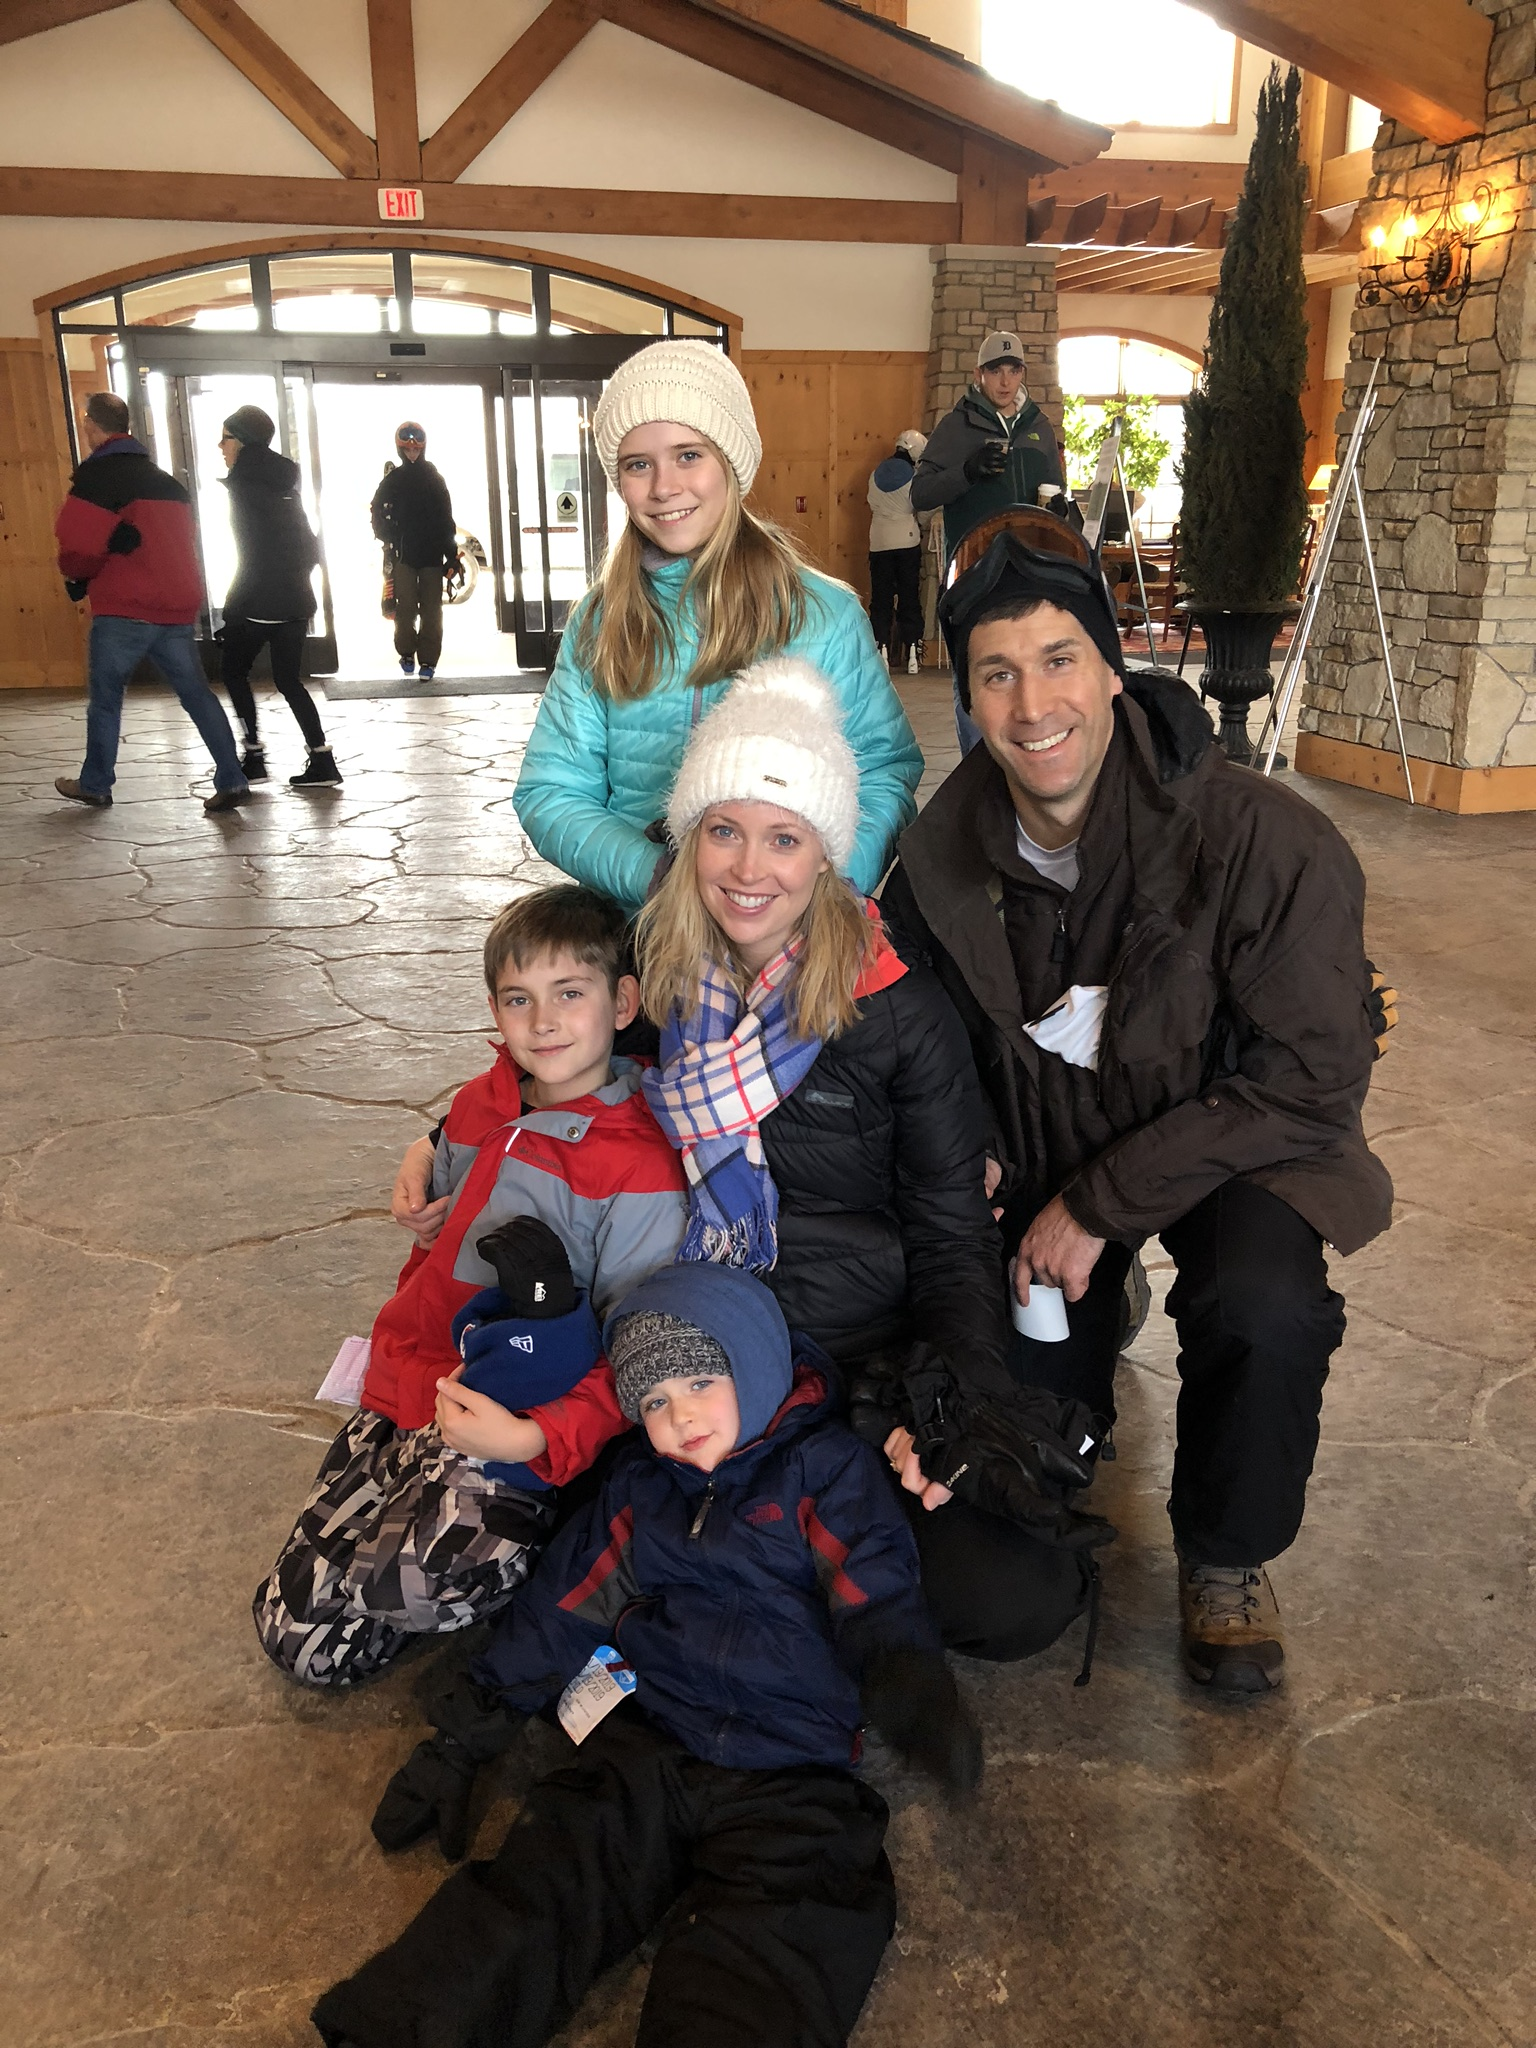 Family pic ski lodge Jan 2019.jpeg